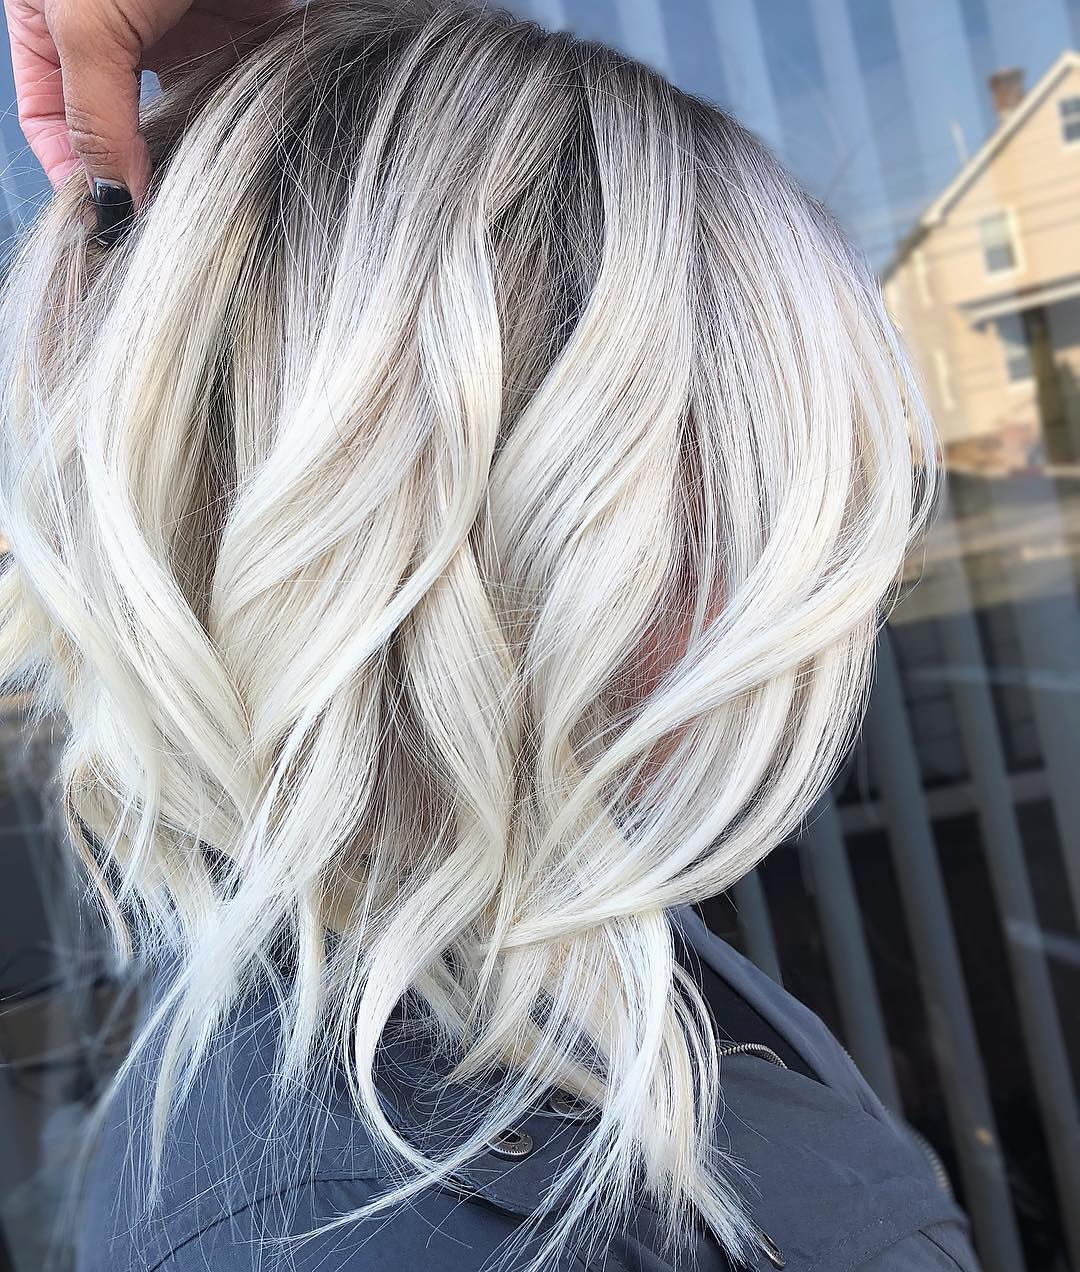 Stylish Ombre Balayage Hairstyles for Medium Length Hair, Medium Hairstyle Color Ideas